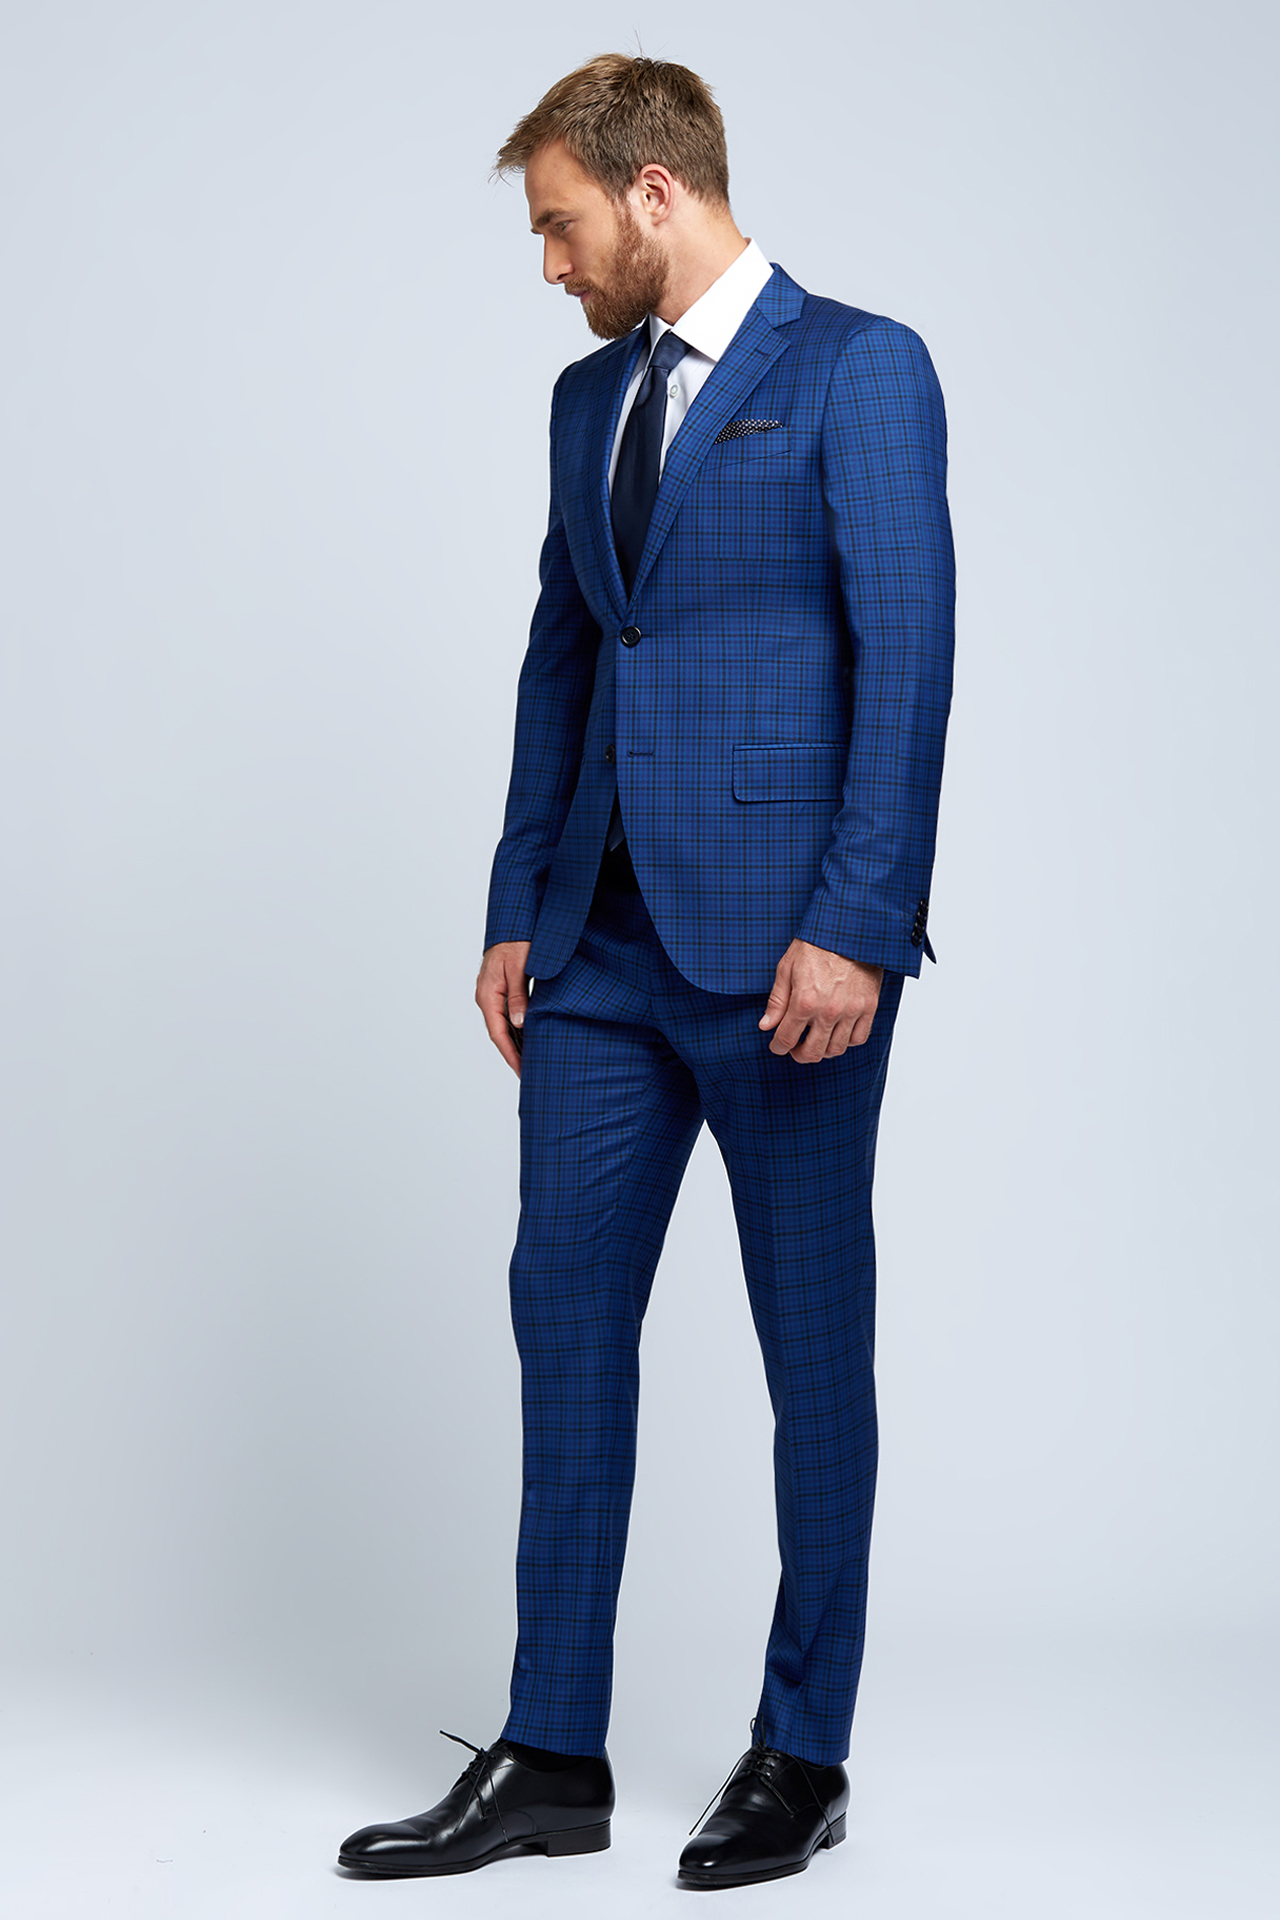 Slim-fit Four Season Wool 2-Piece Suit in Multi Blue Mini Check